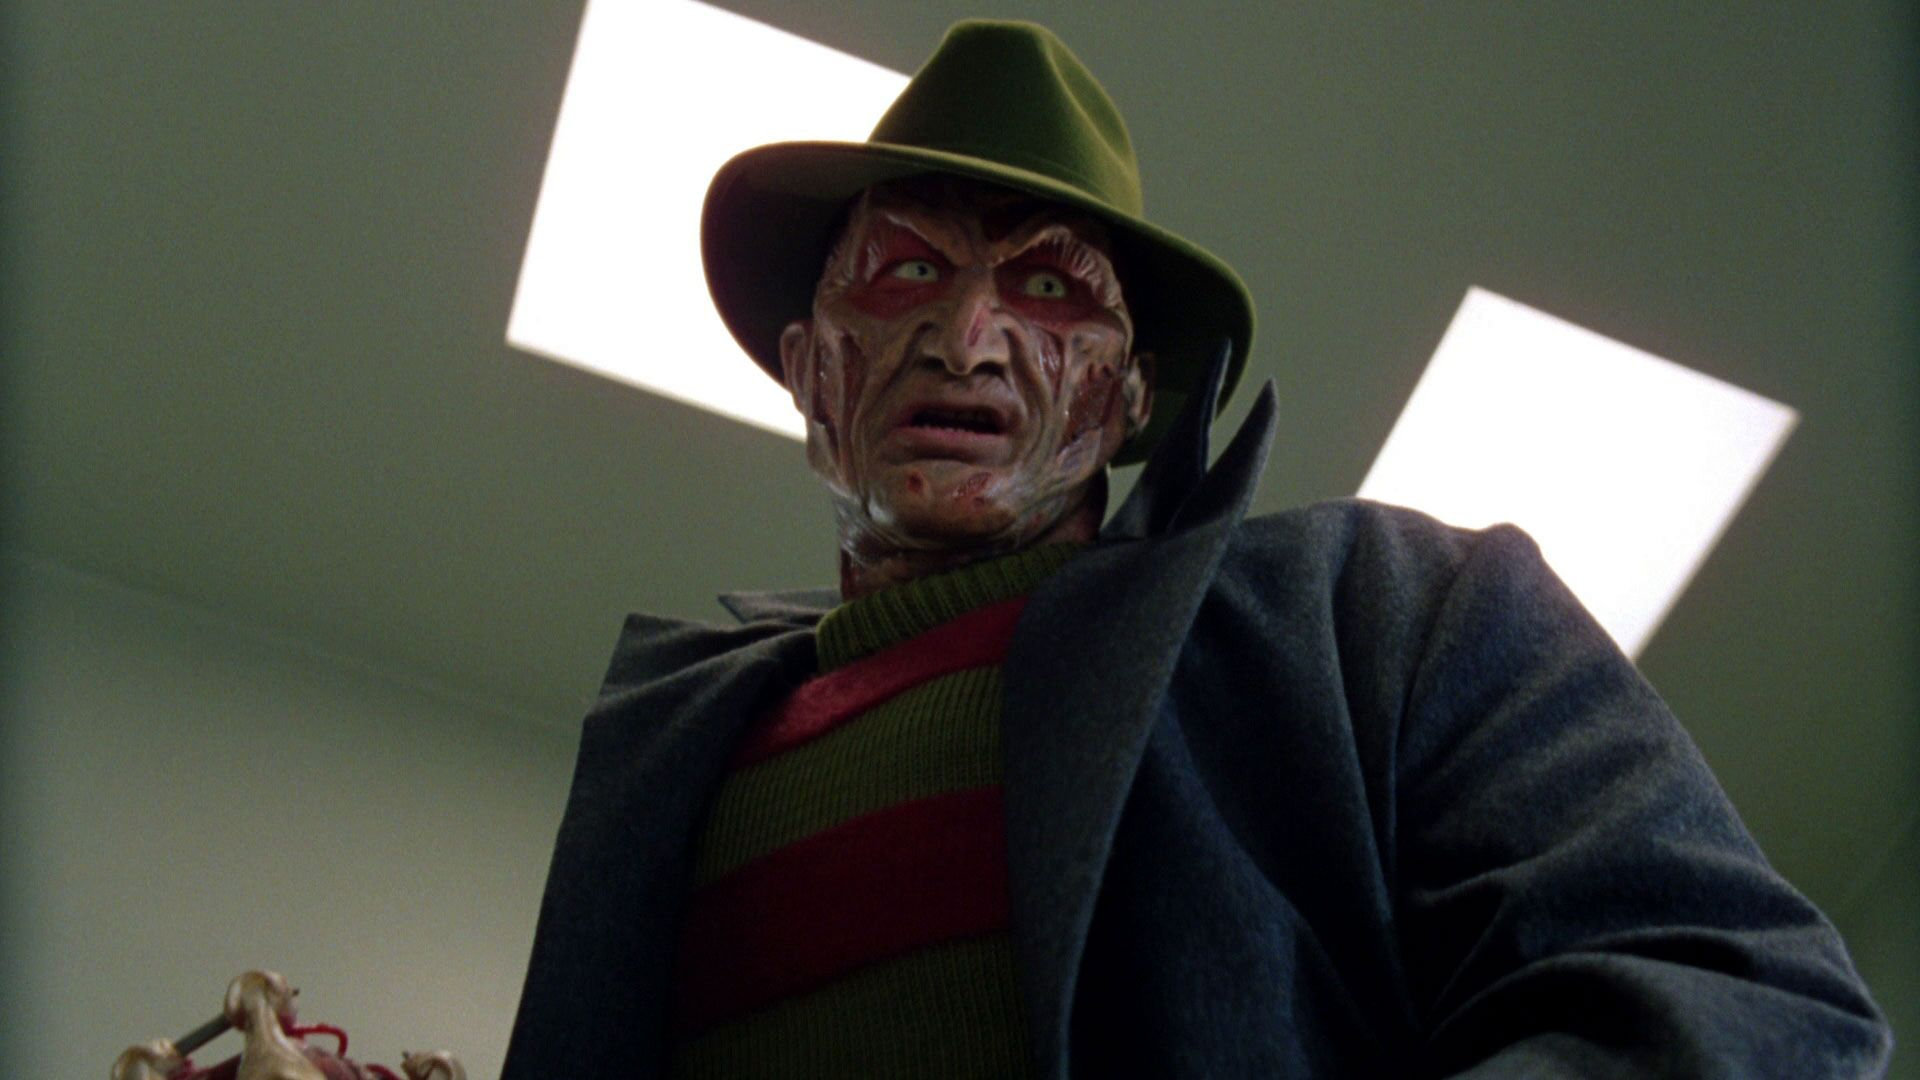 Elm Street: NECA giving fans New Nightmare with retro Freddy figure